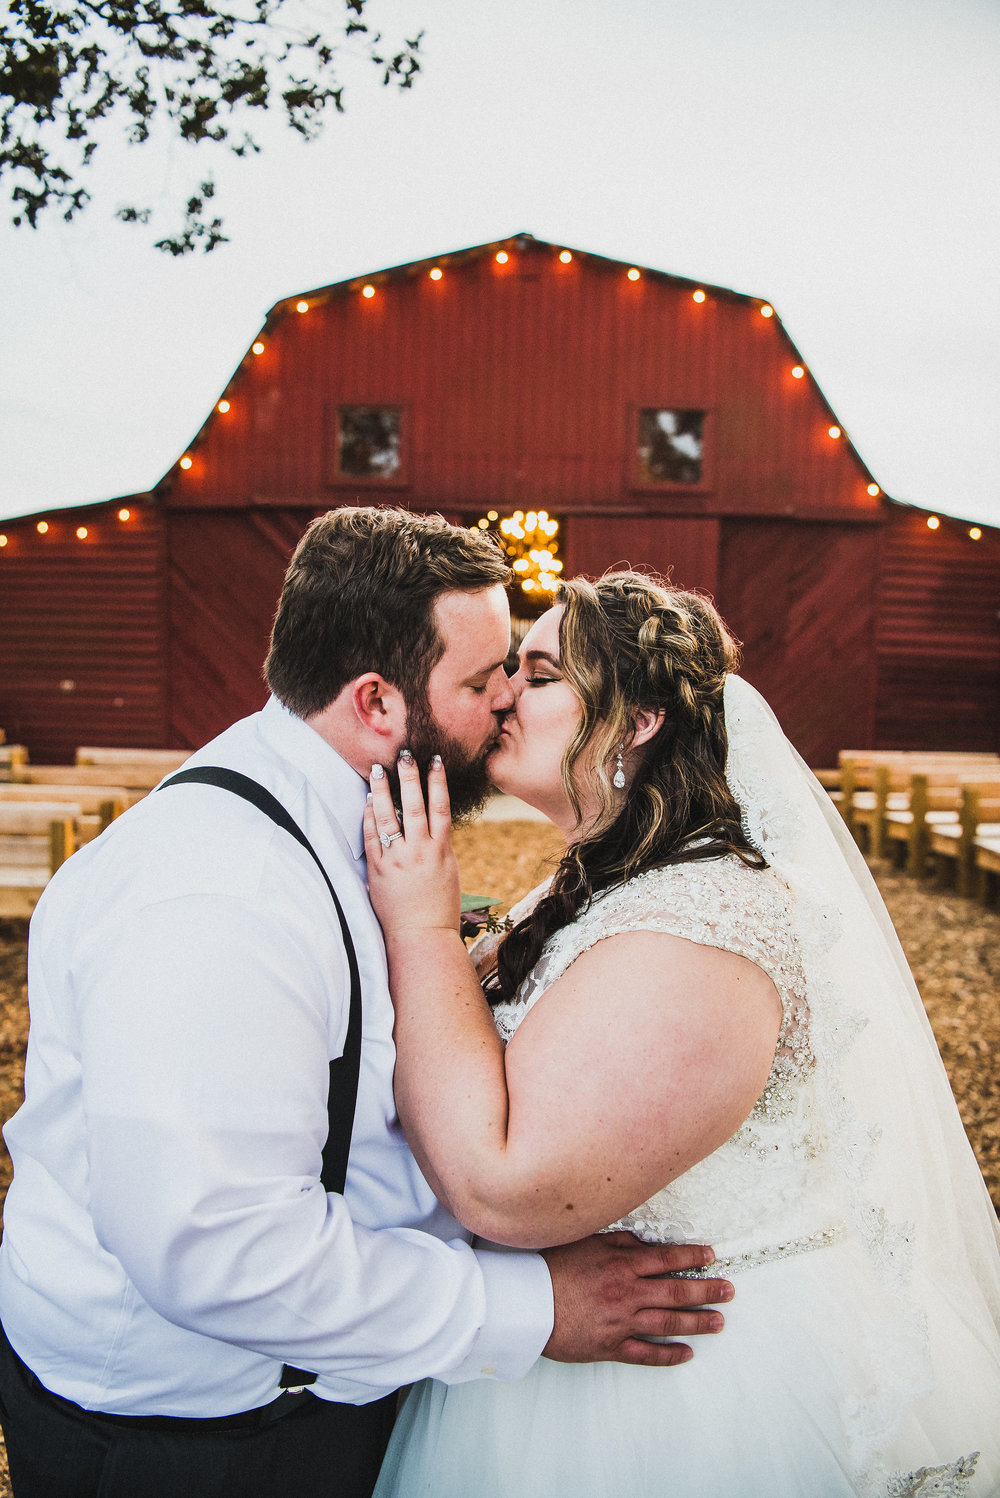 Sara + Chris - Sarah was absolutely amazing! From the engagement session to the wedding, she went above and beyond our expectations on everything!!!